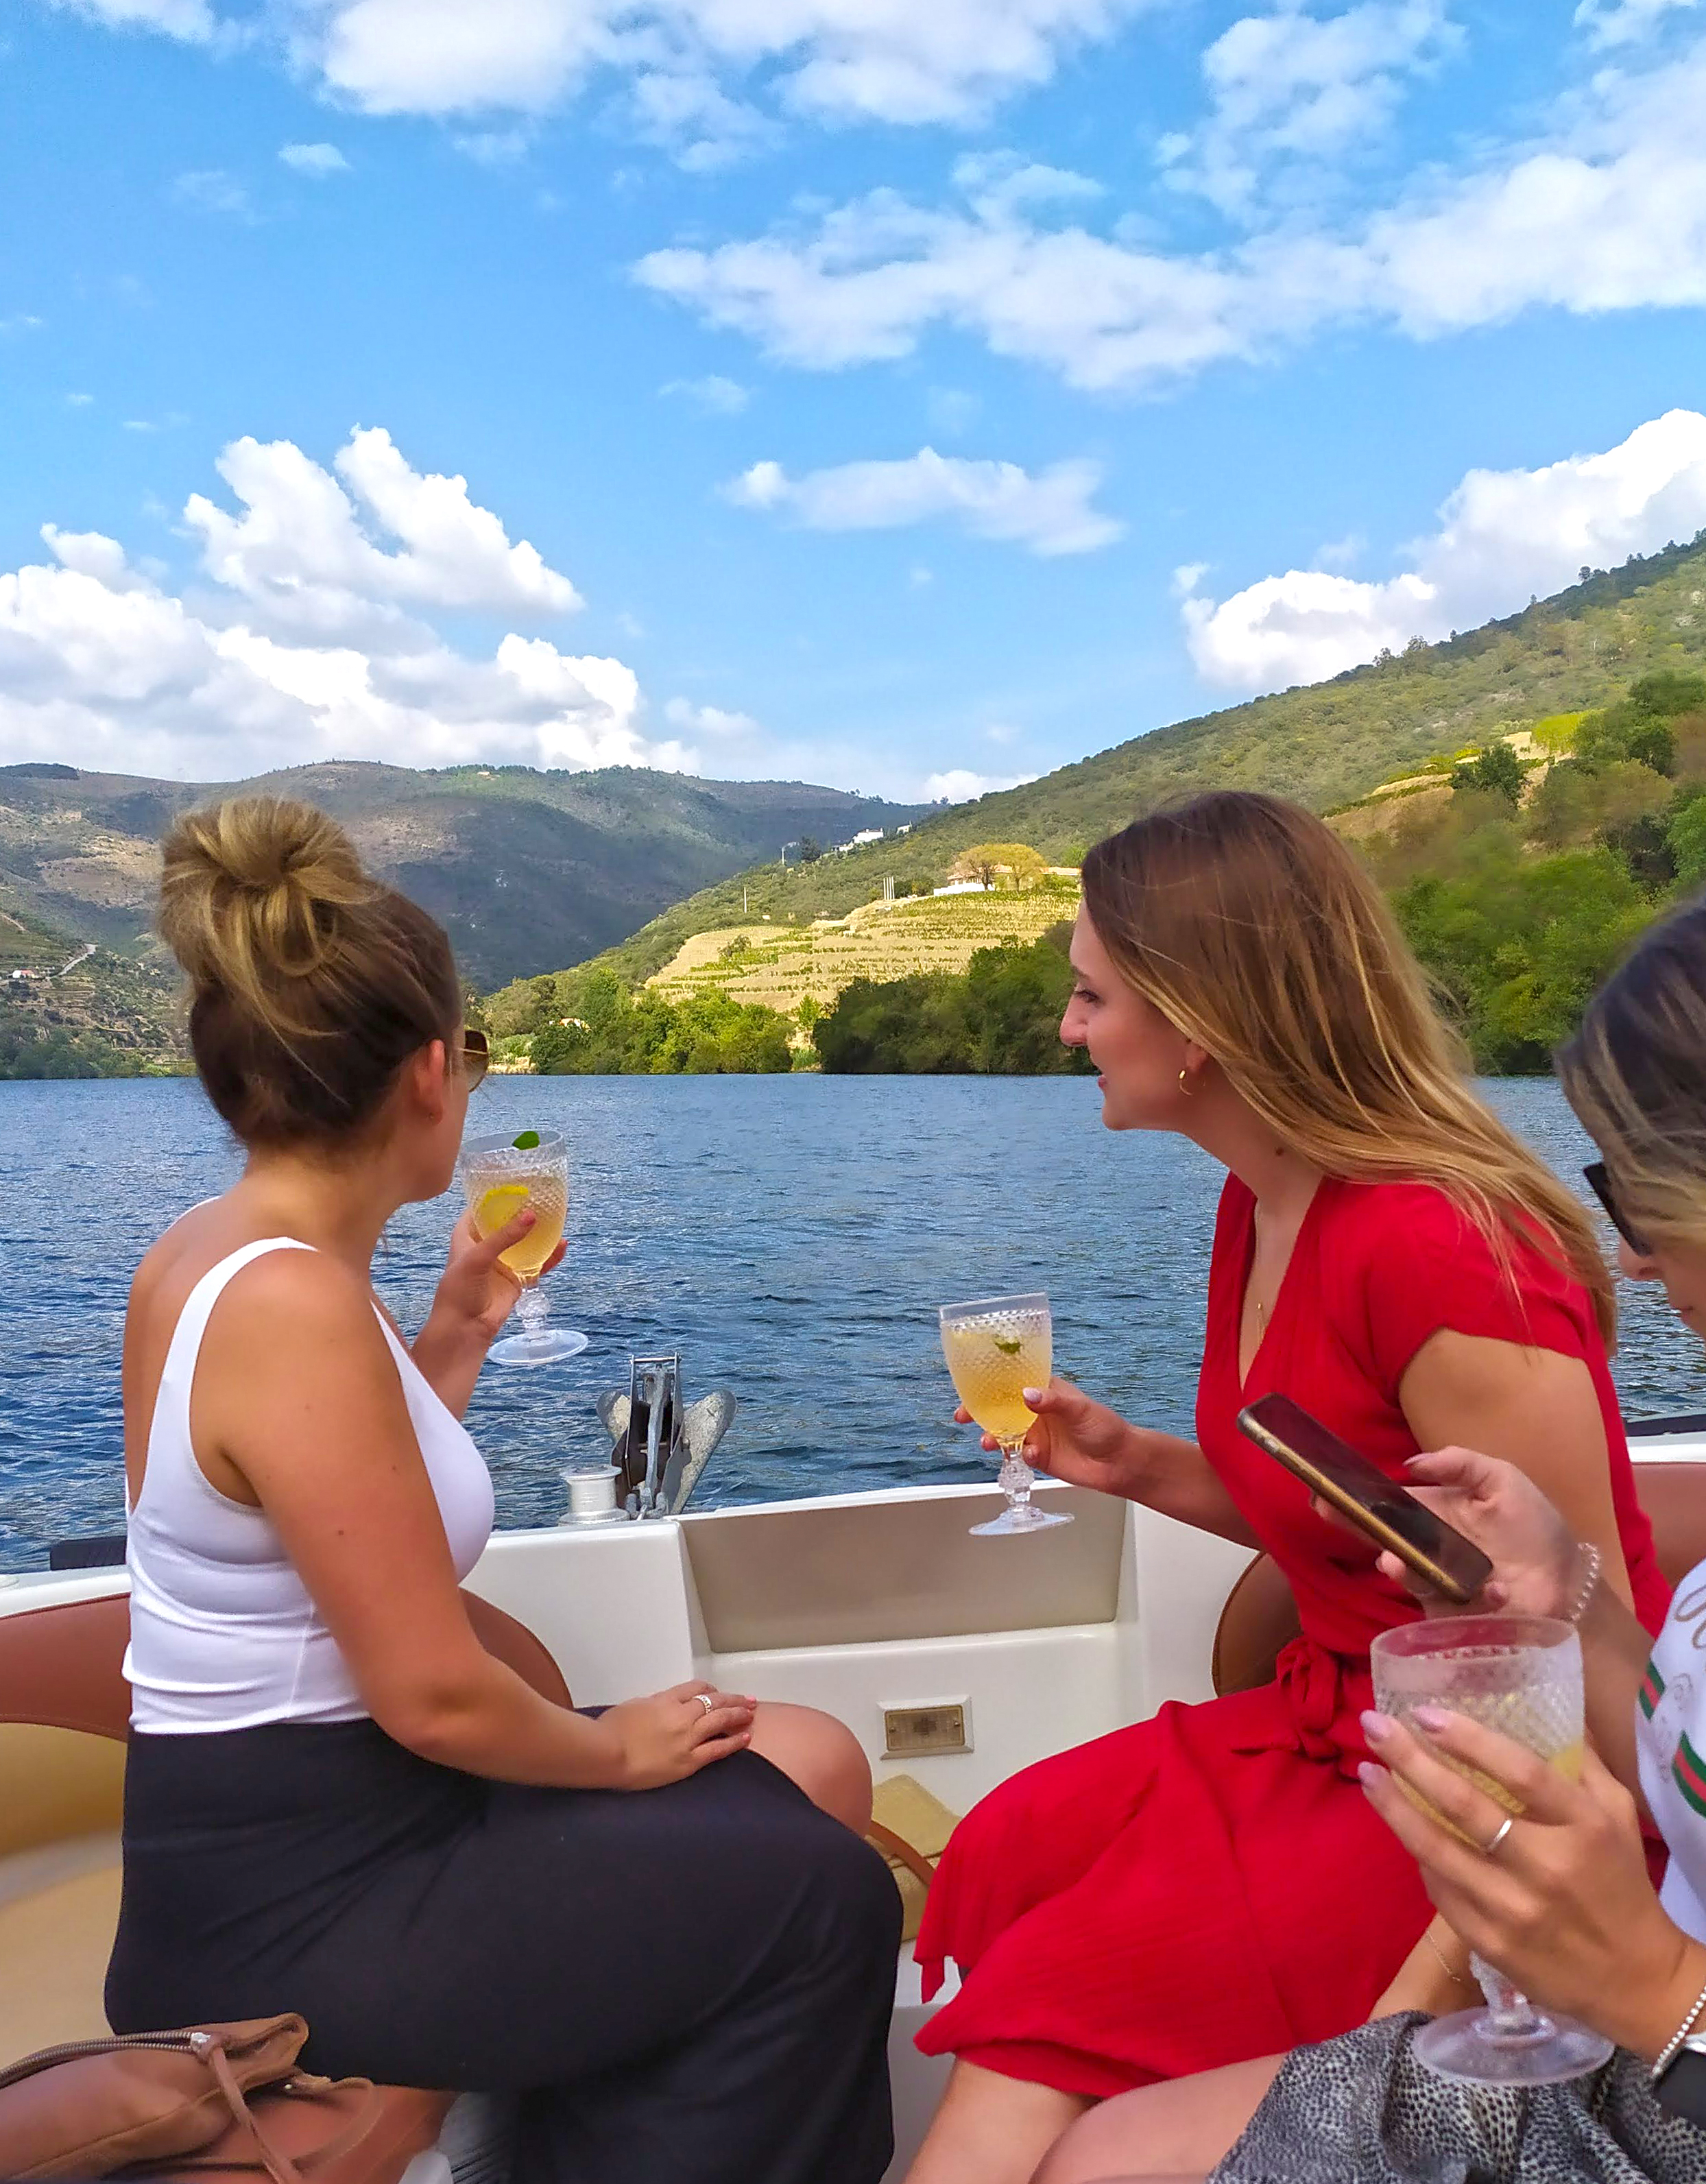 Sailing in Douro